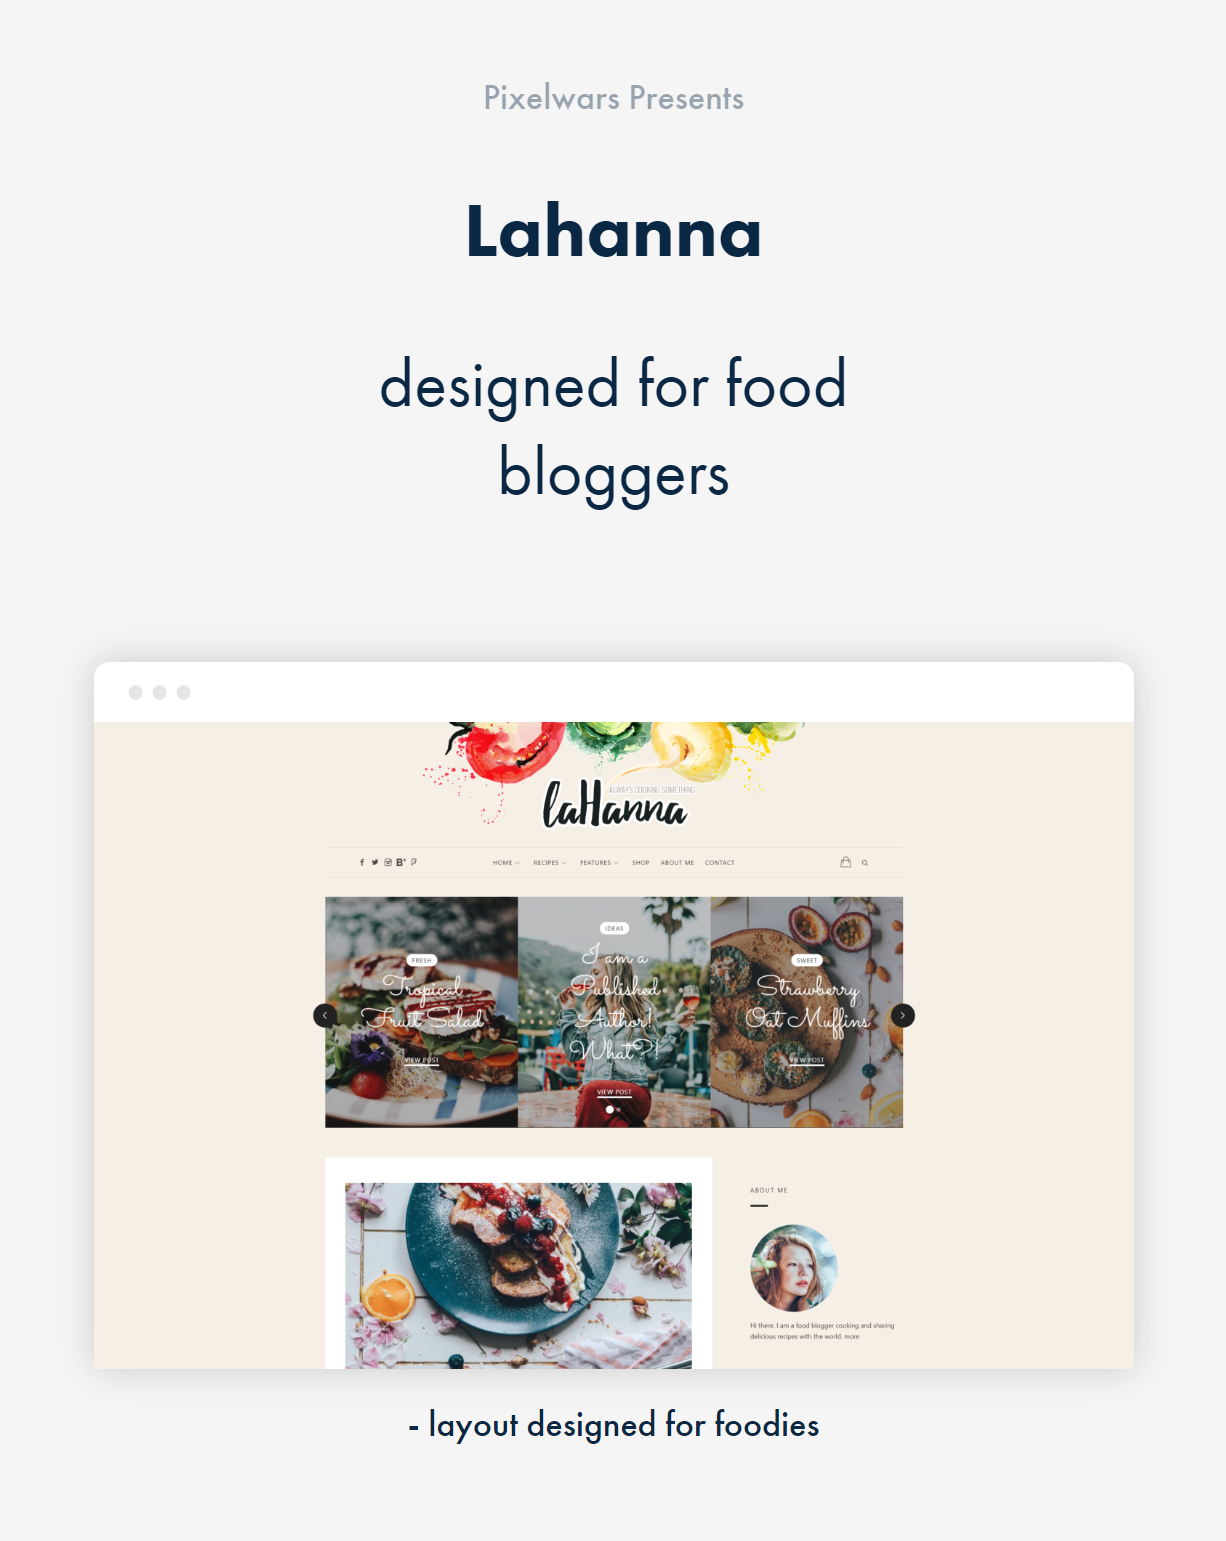 item by pixelwars - lahanna wordpress food blog theme for food bloggers